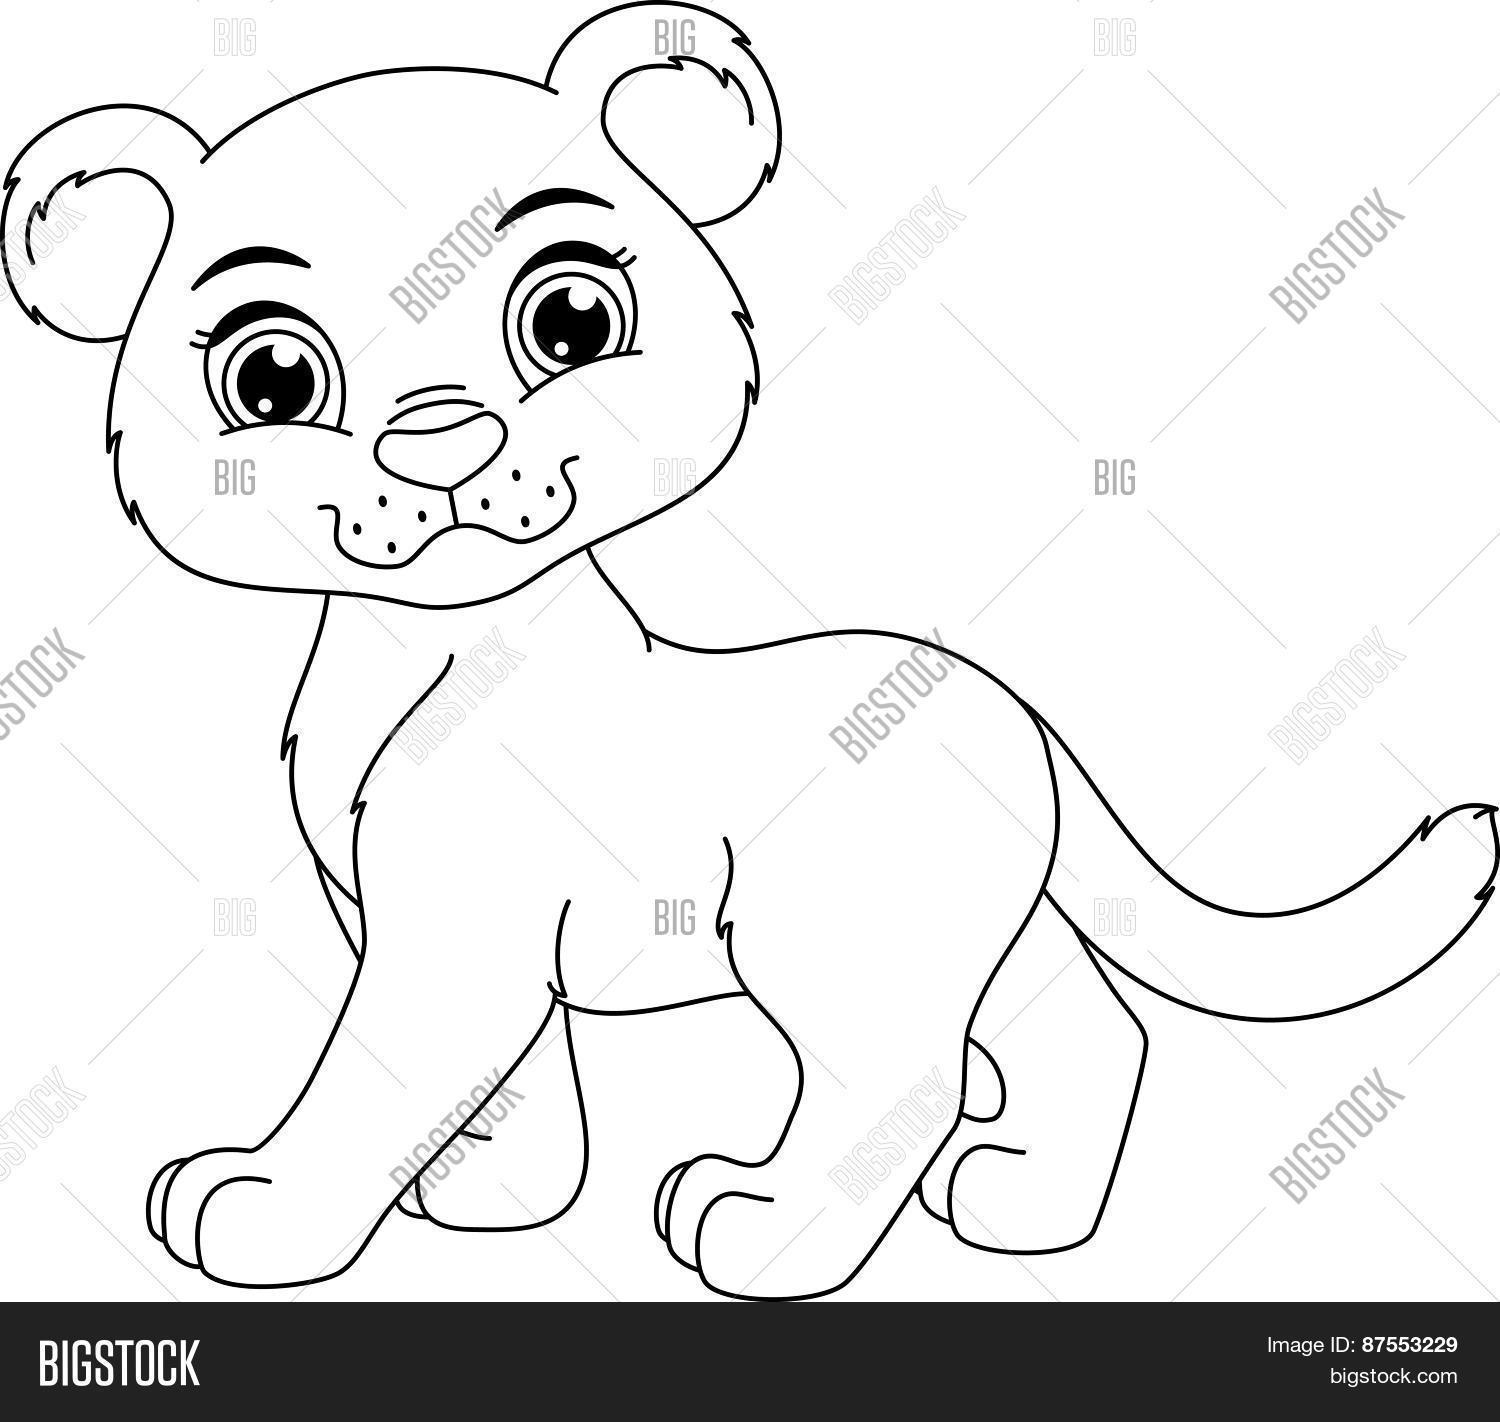 Black Panther Coloring Pages - Best Coloring Pages For Kids | 1422x1500